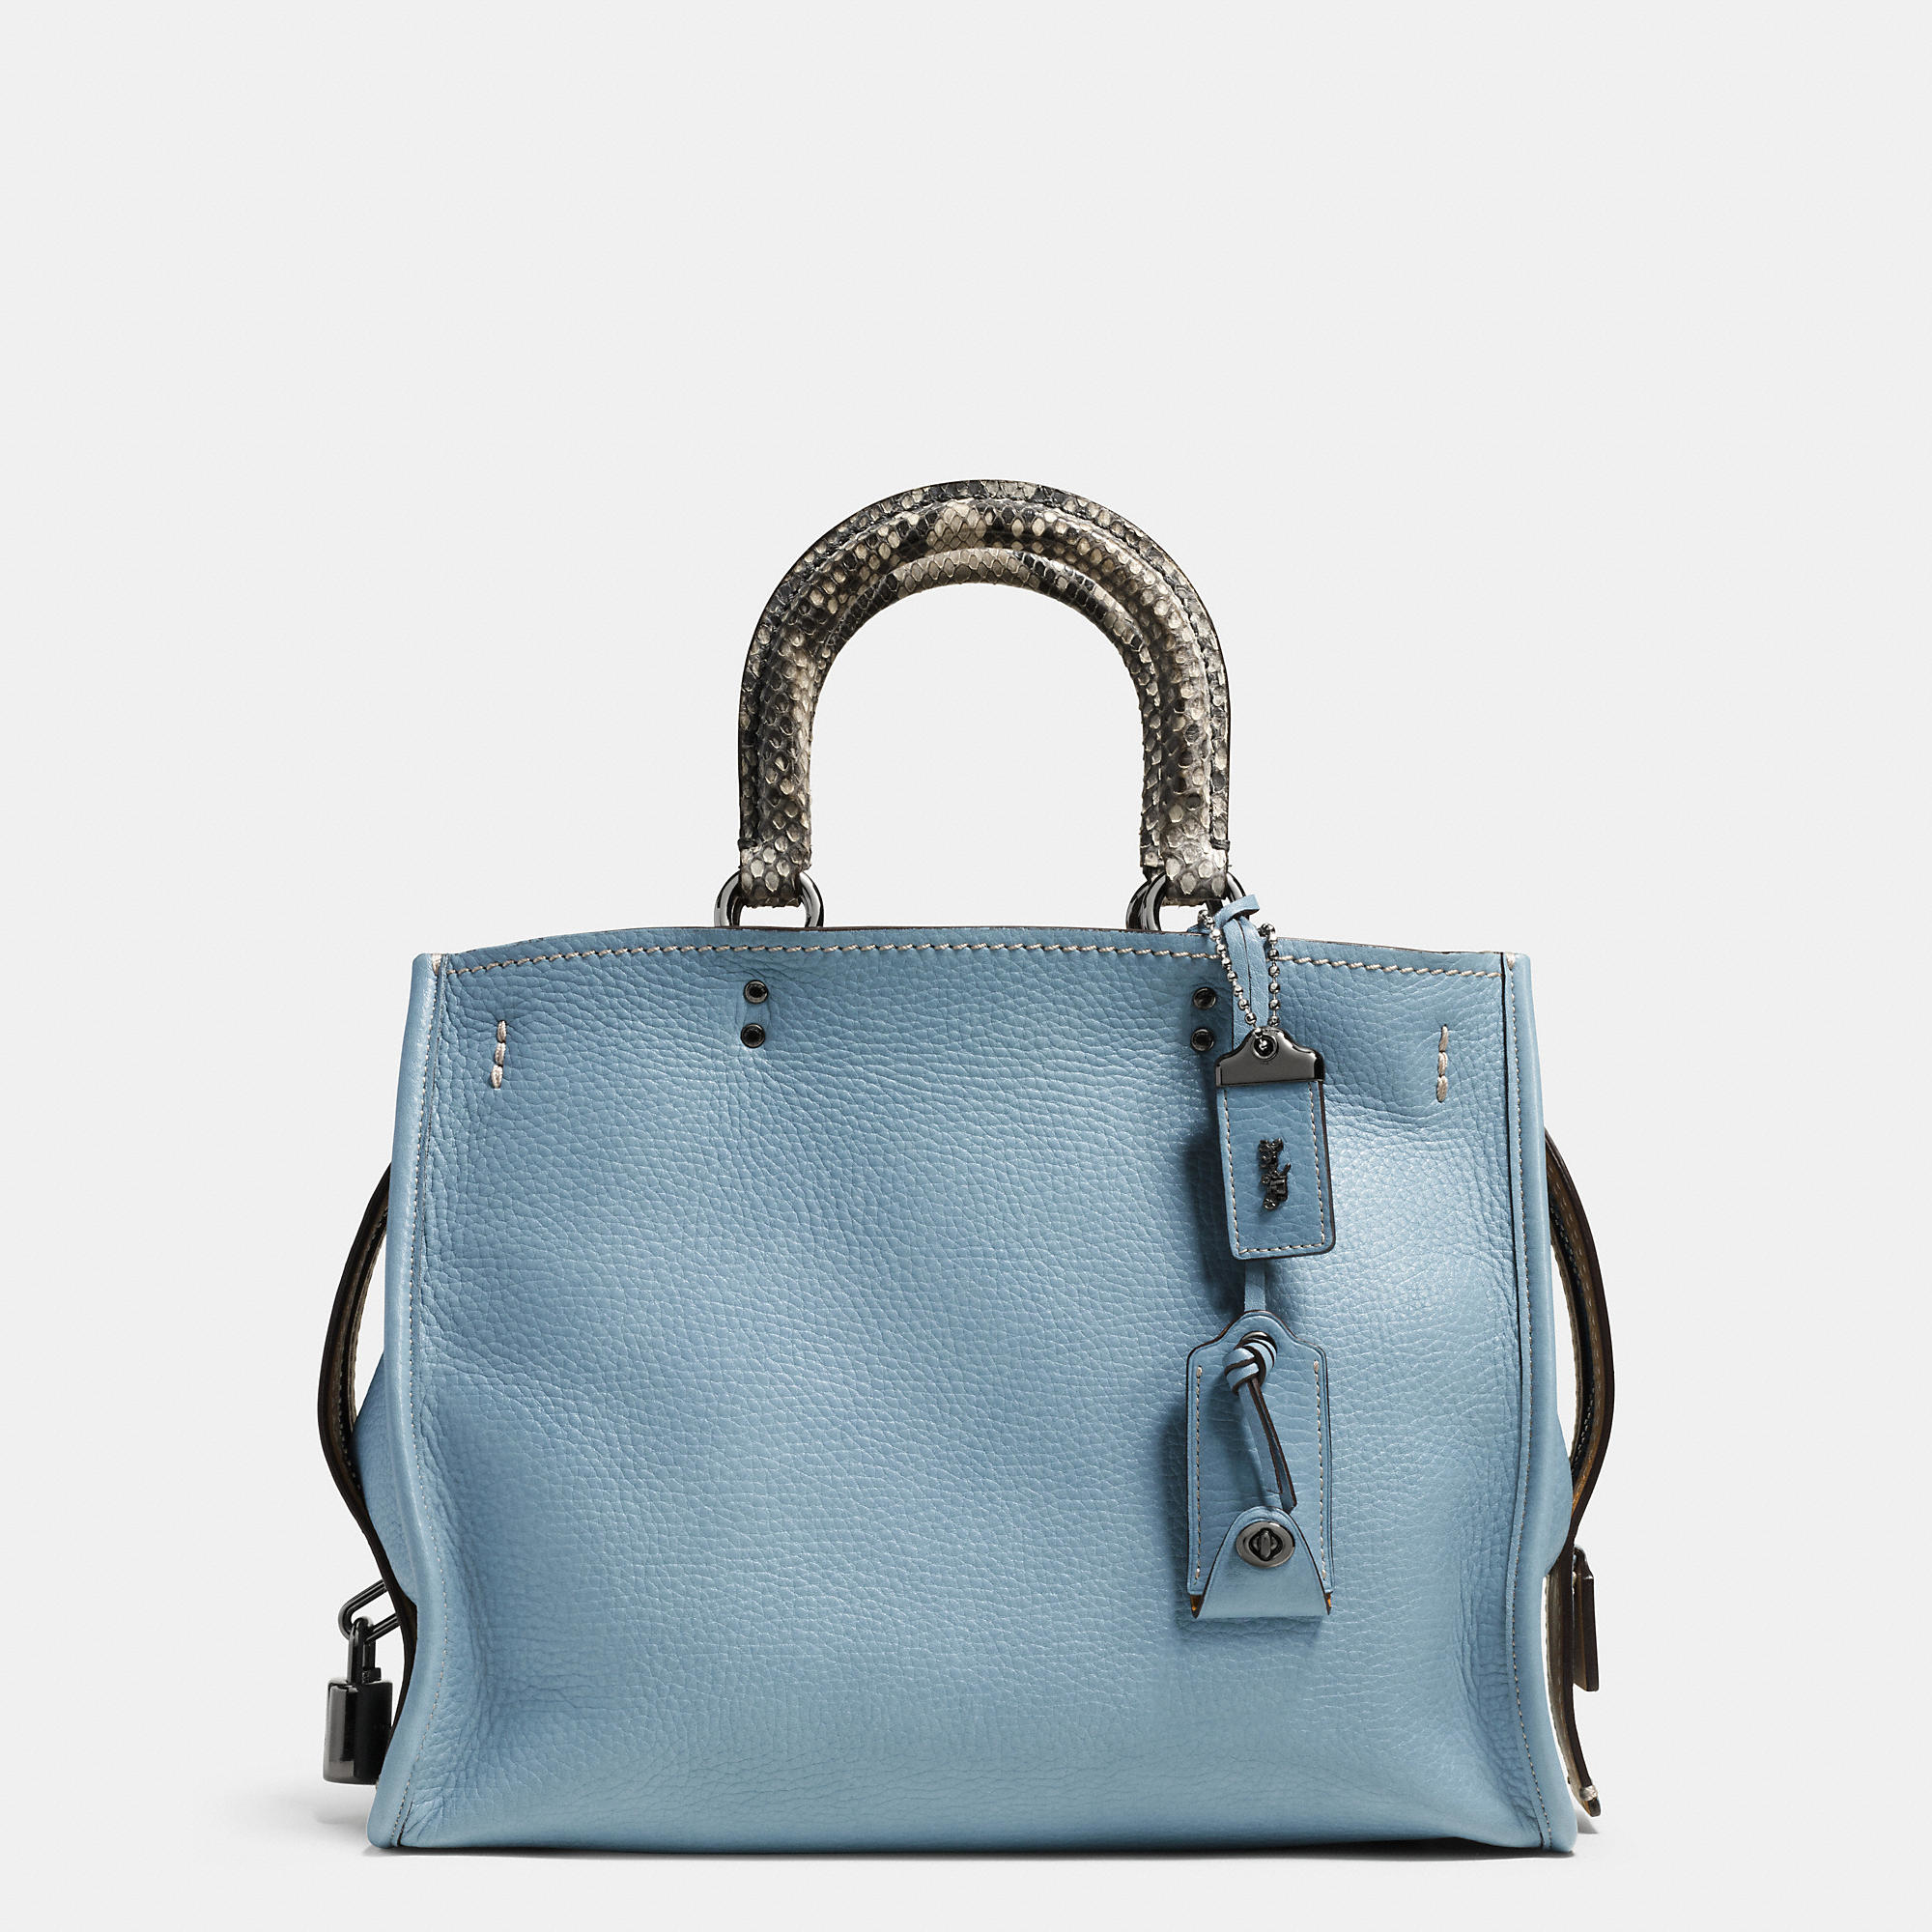 ed2489fb21 ... clearance lyst coach rogue bag in colorblock python in blue ff59b 4f4f9